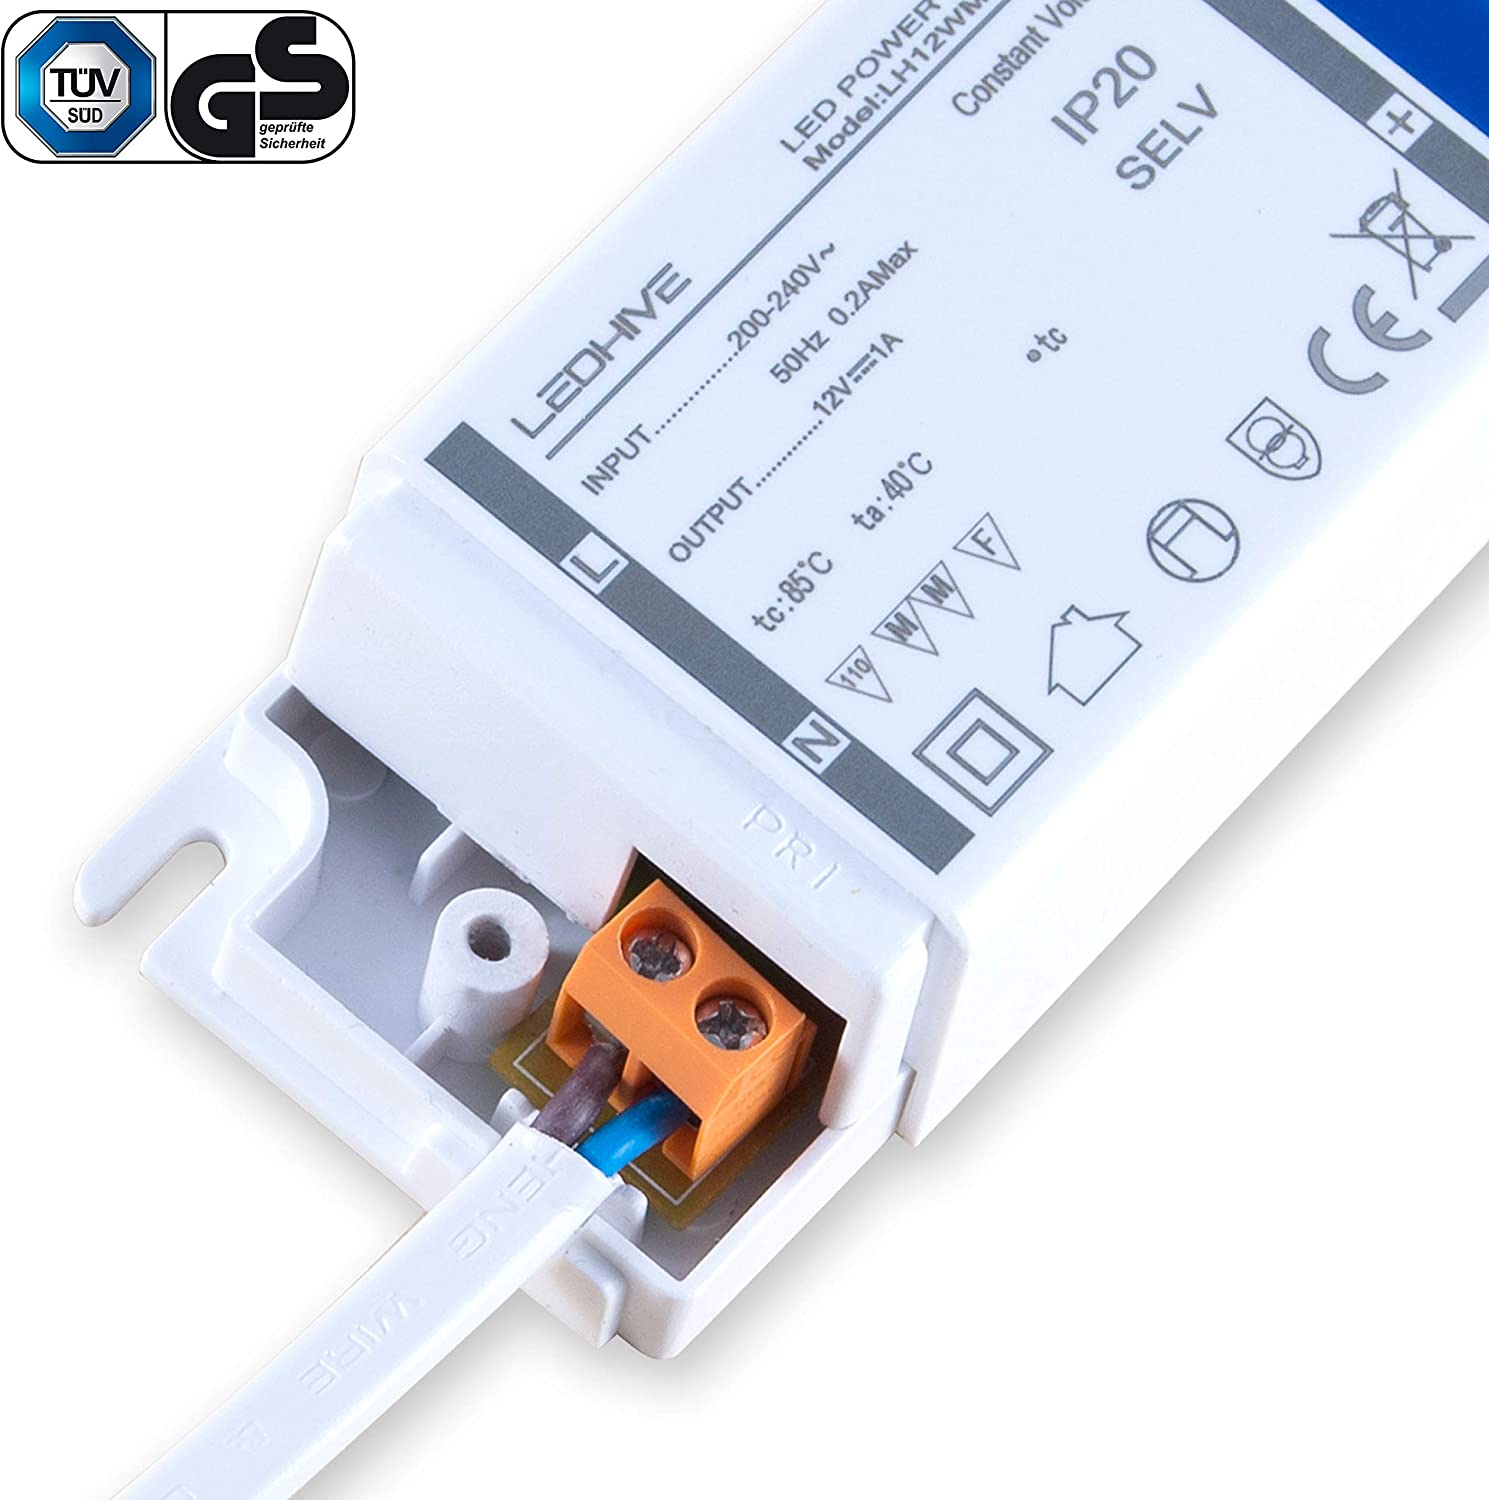 POWER SUPPLY LEAD FOR ENGEL F-SERIES E-SERIES 240V AUS CABLE REPLACEMENT